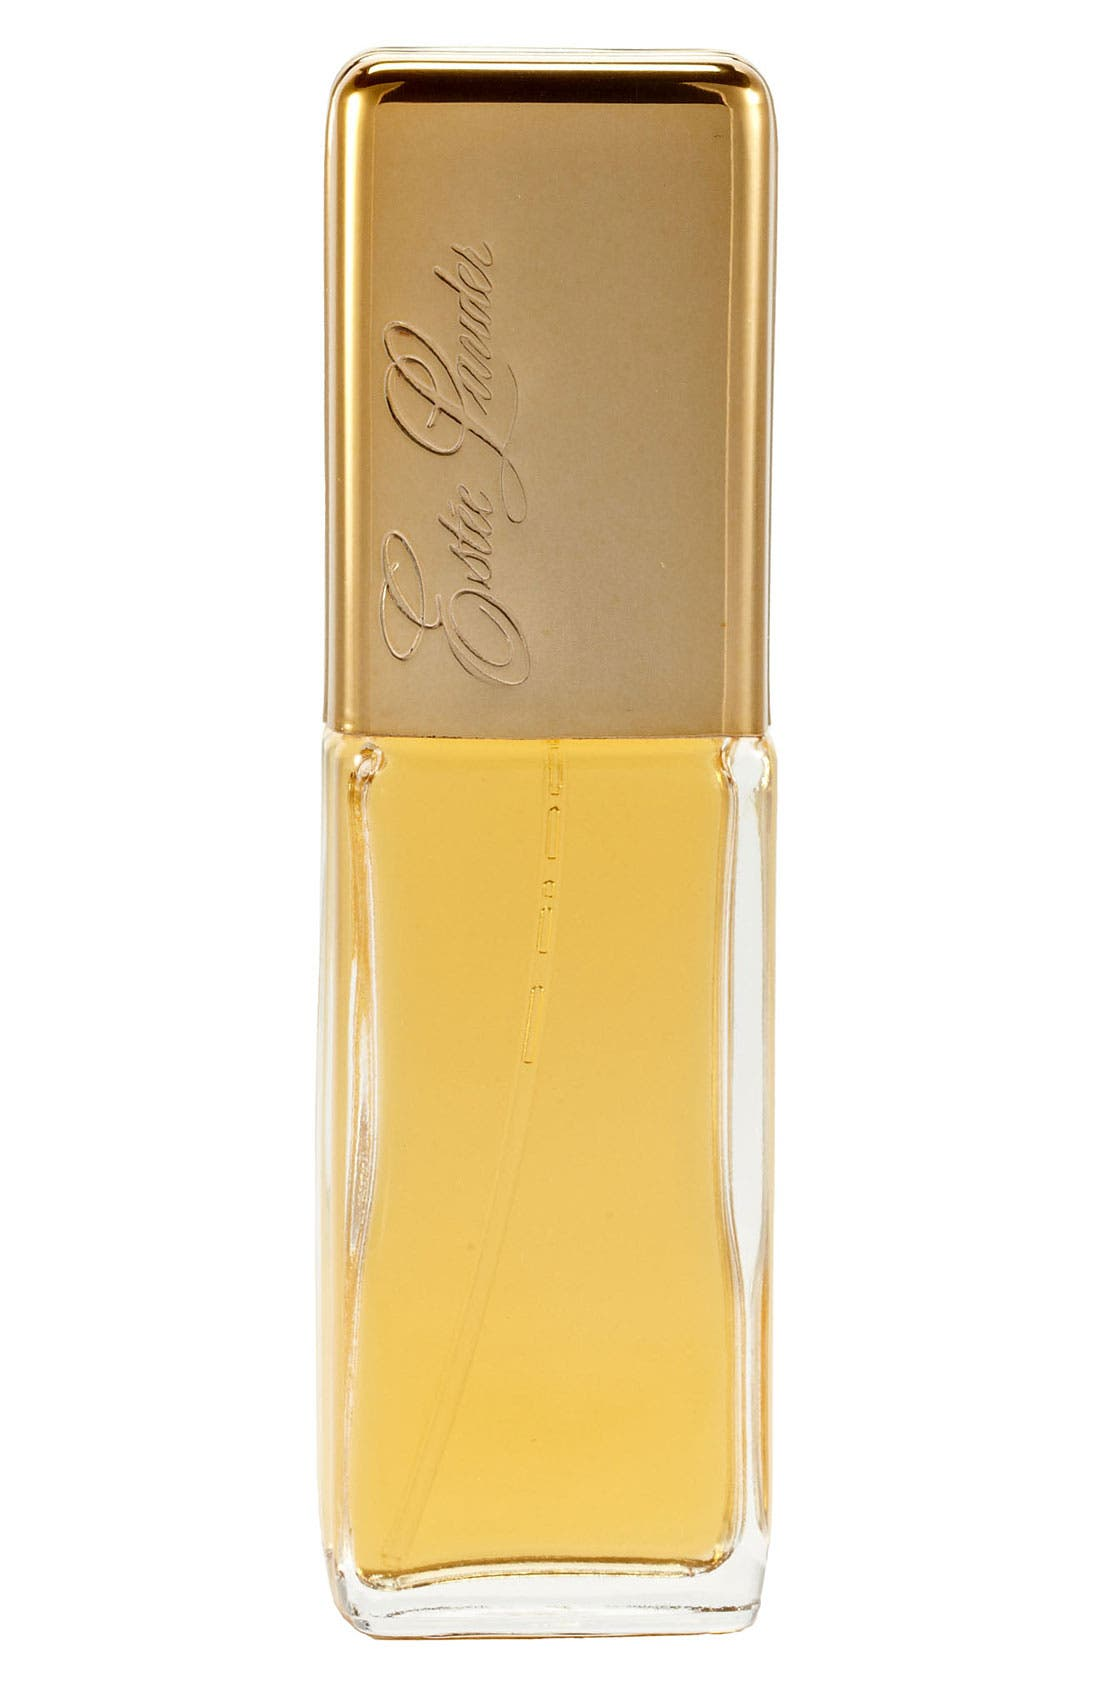 Estée Lauder Private Collection Pure Fragrance Spray